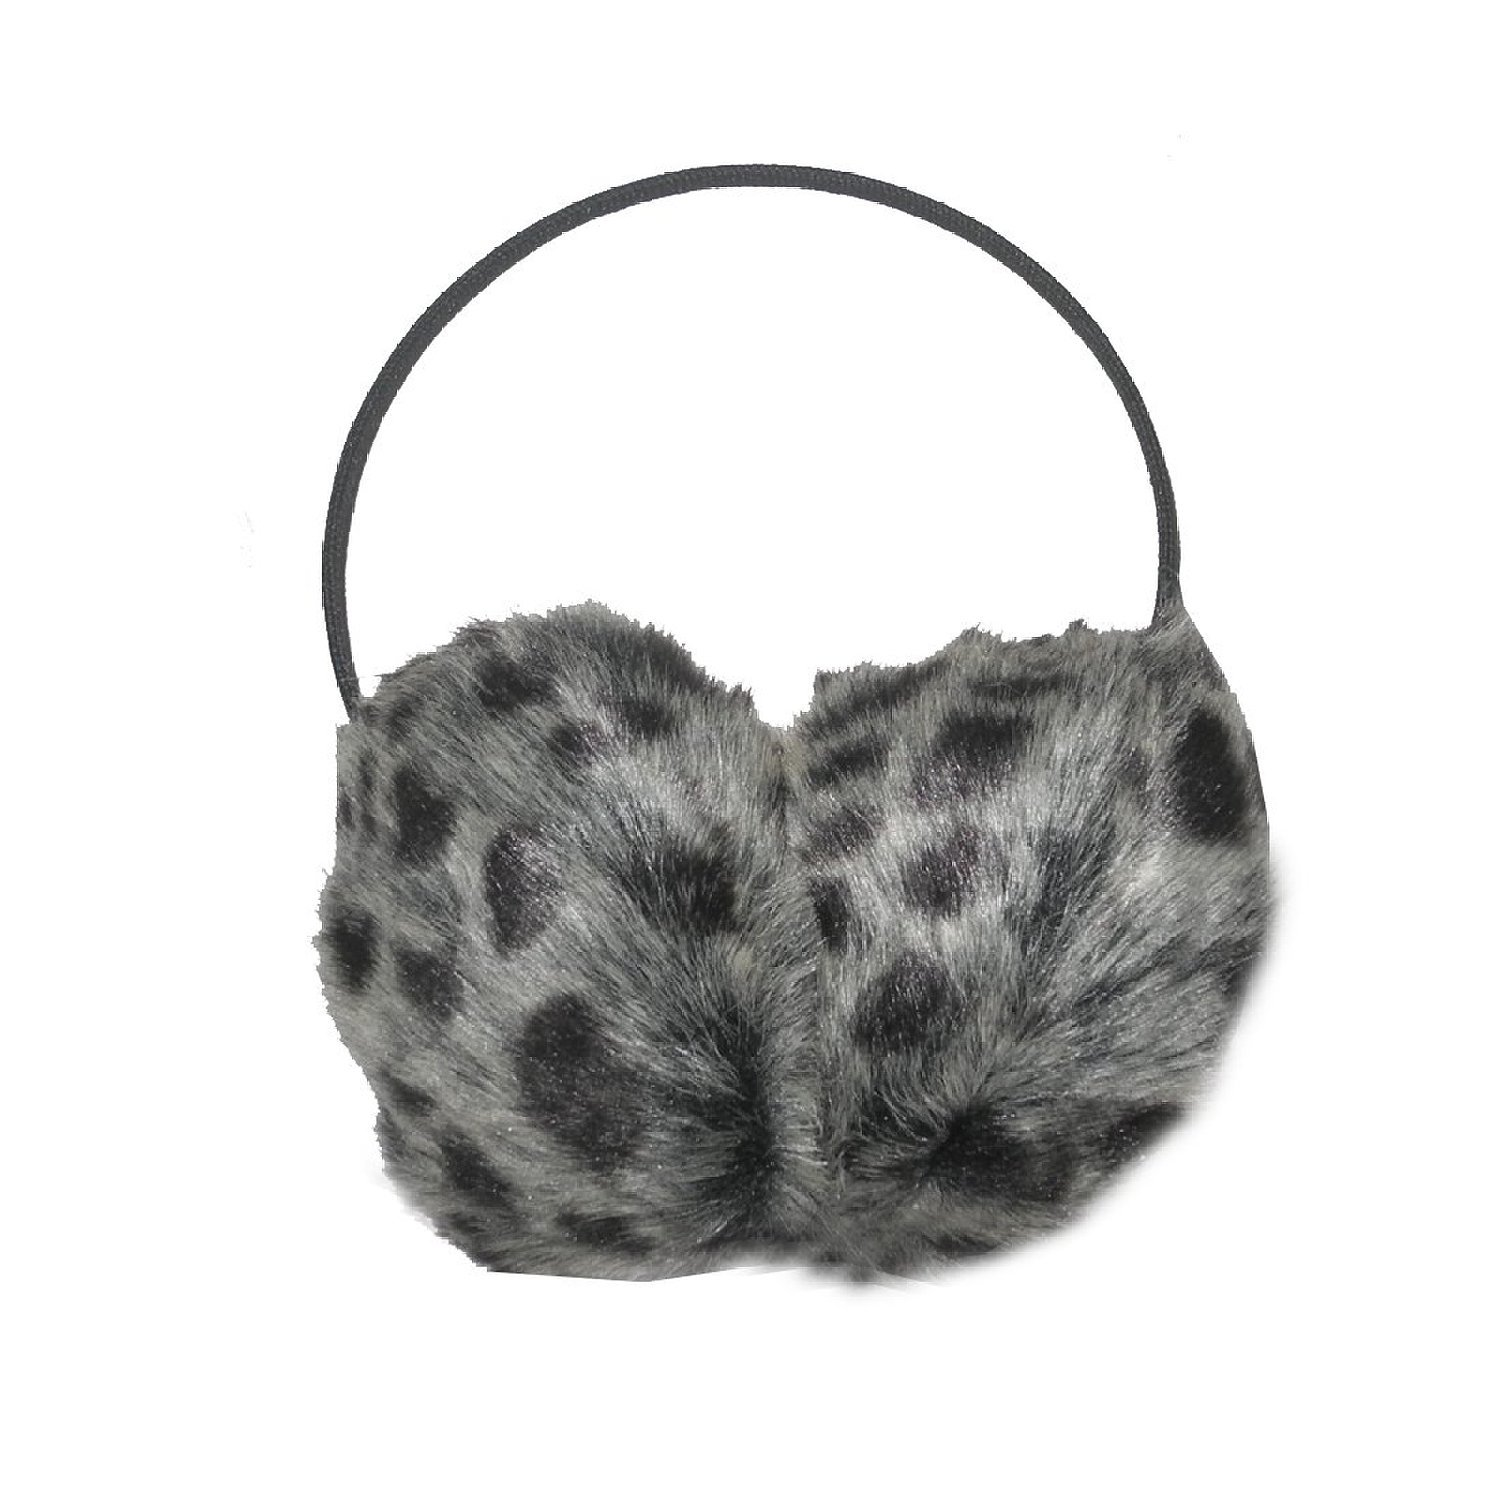 Behind The Head: Damen Winter Ski & Snow Faux Fur Animal Print Earmuffs